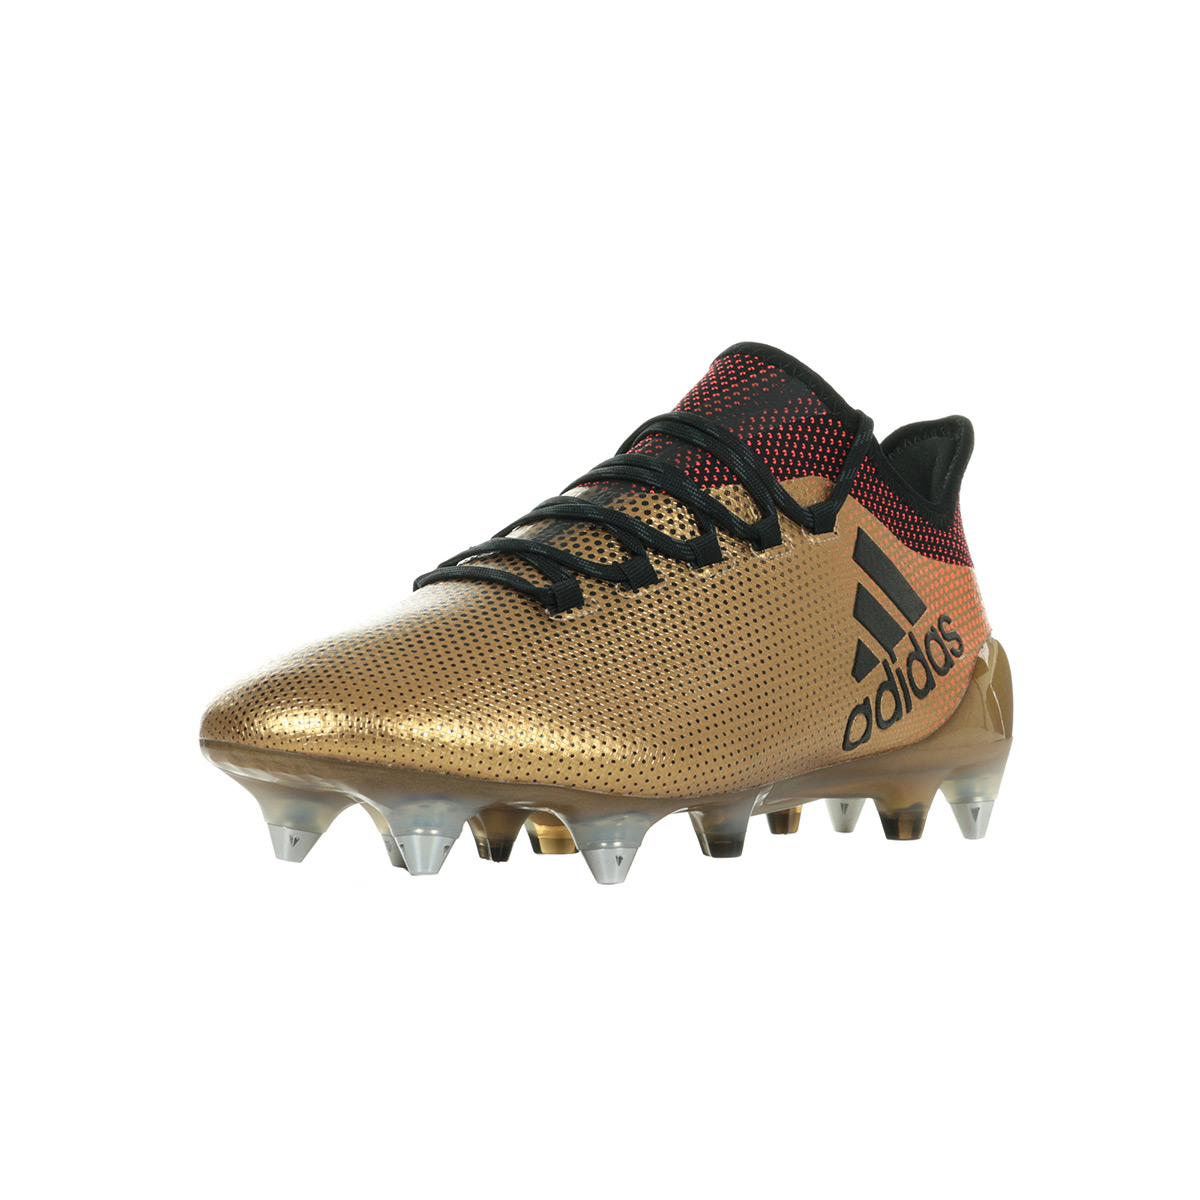 Chaussures Football Adidas X 17.3 Ag Or Taille : 42